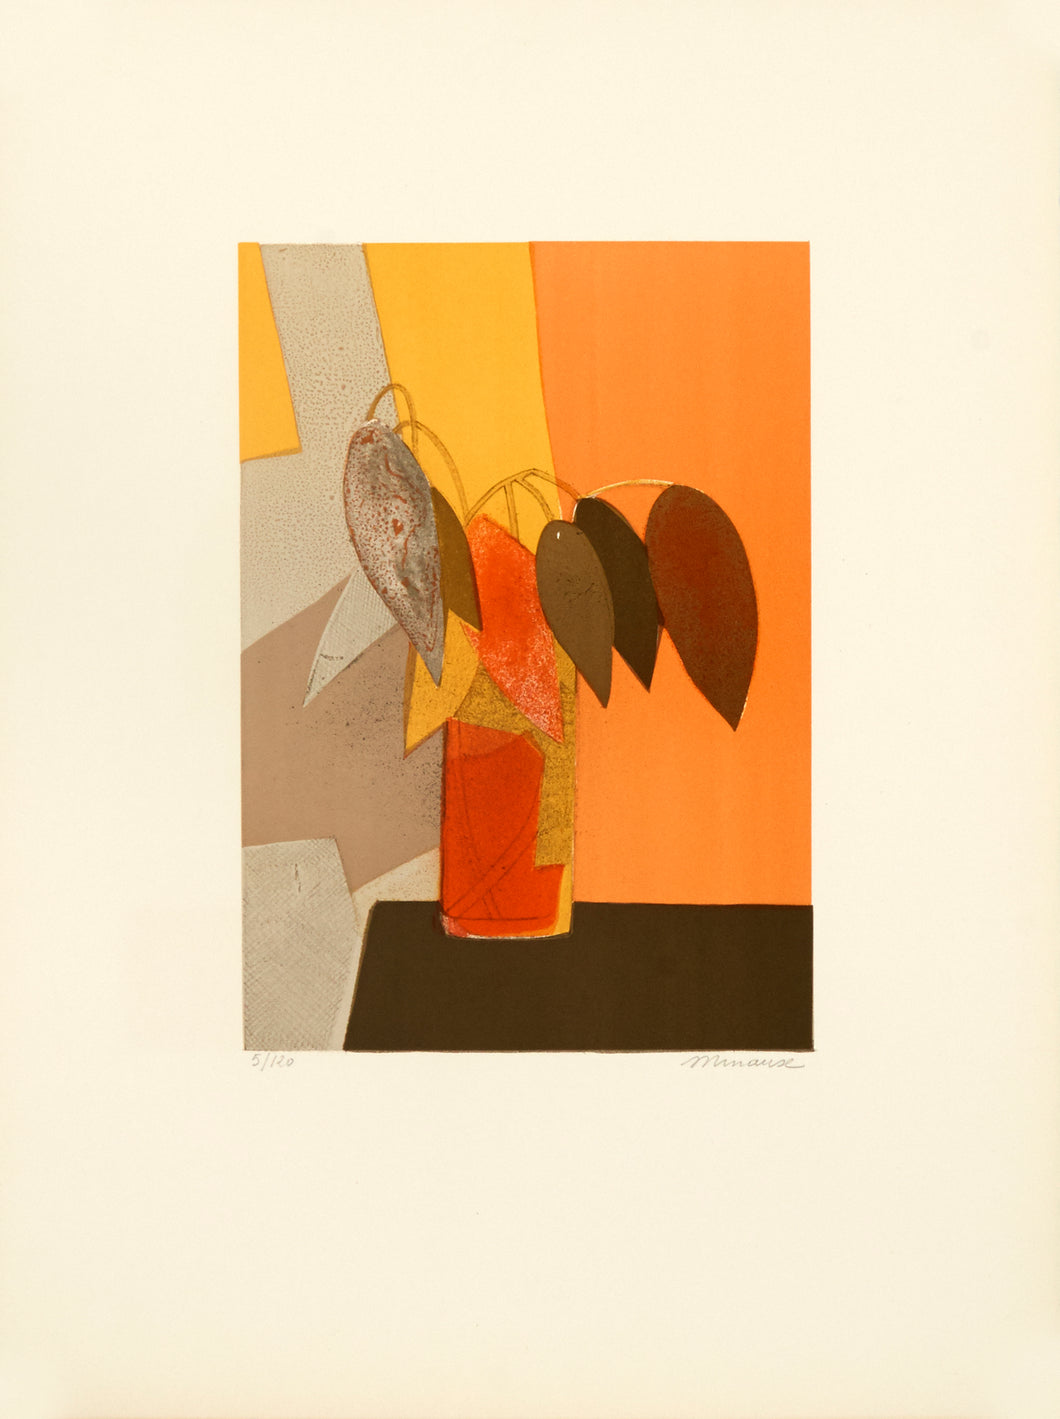 Untitled, (Orange vase with 8 leaves) by André Minaux 1970